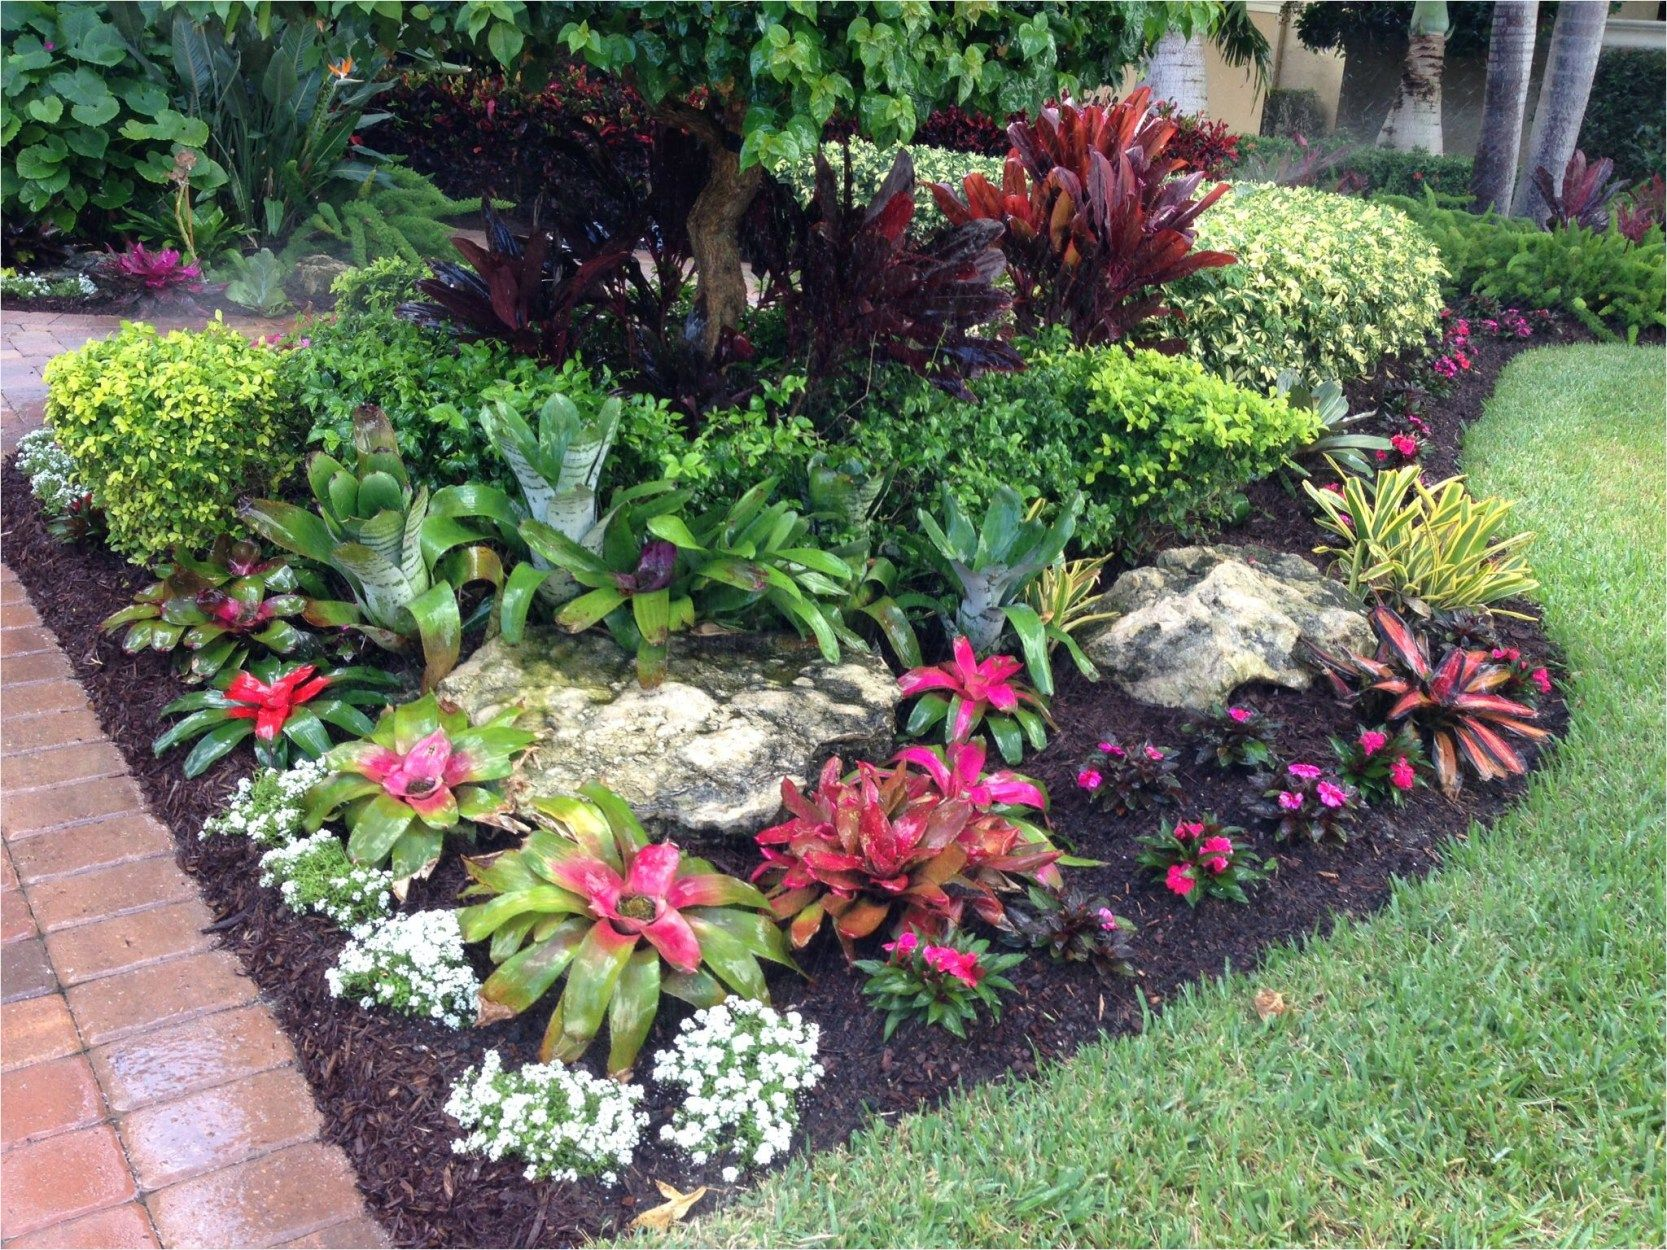 Most Amazing Tropical Garden Landscaping Ideas | Tropical ... on Tropical Small Backyard Ideas id=76887